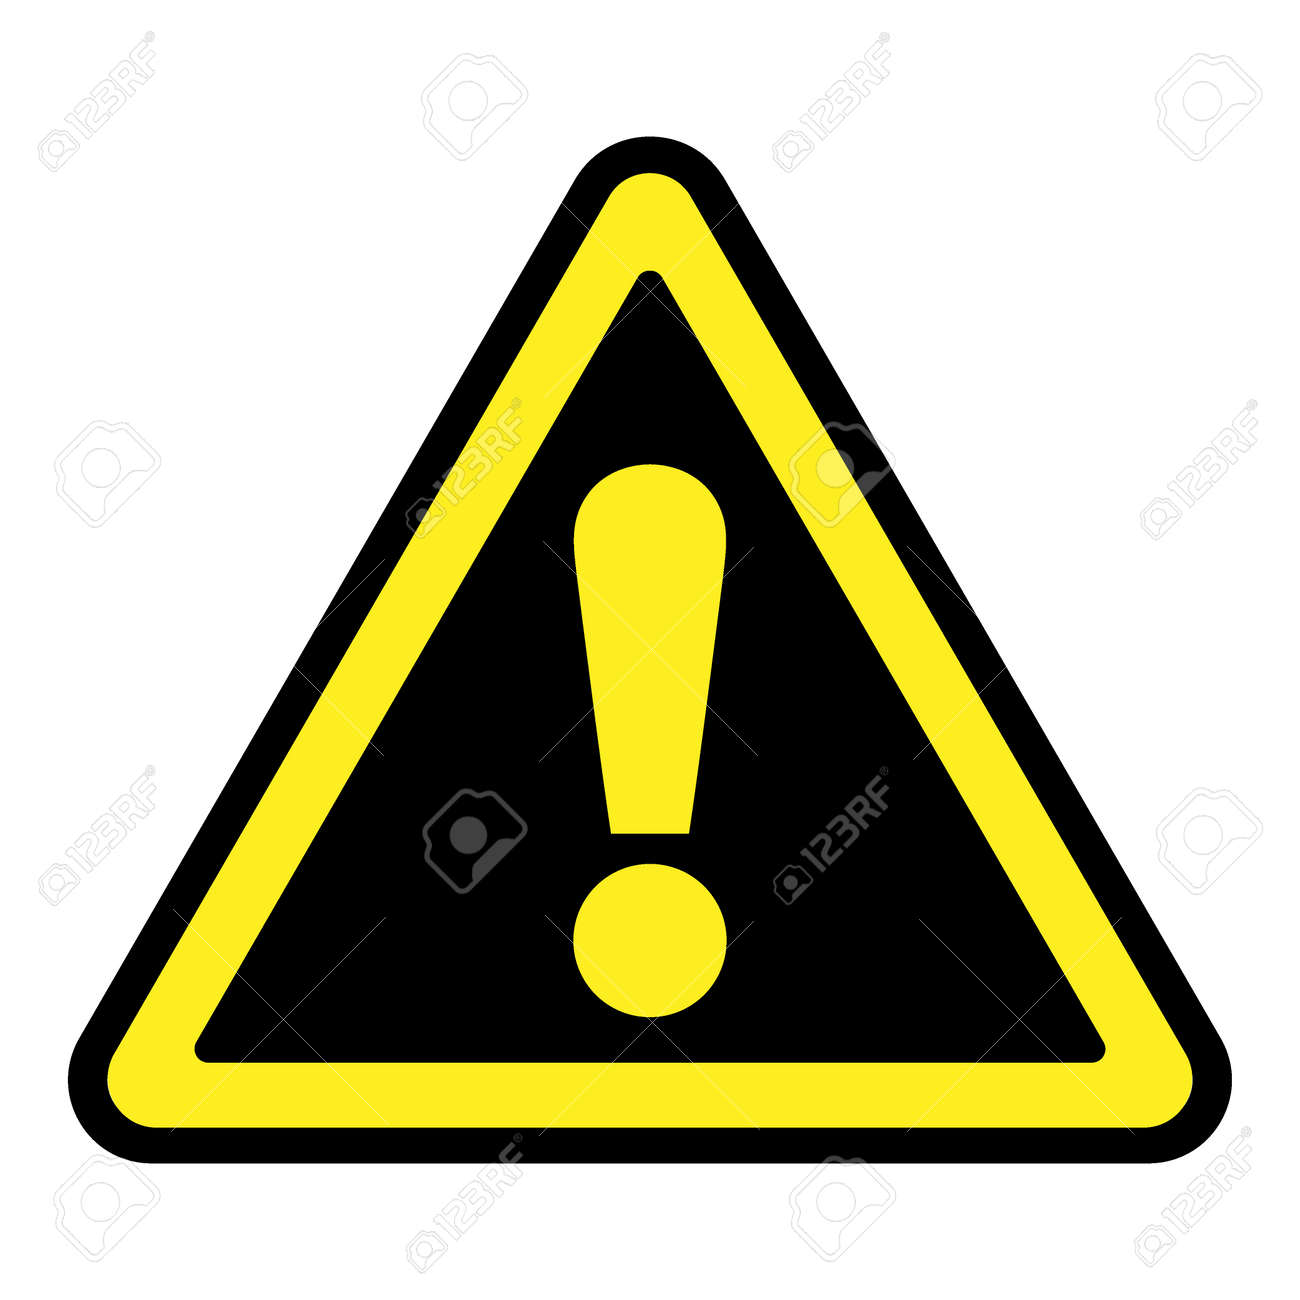 Hazard Warning Attention Sign Icon In A Black Triangle With Yellow